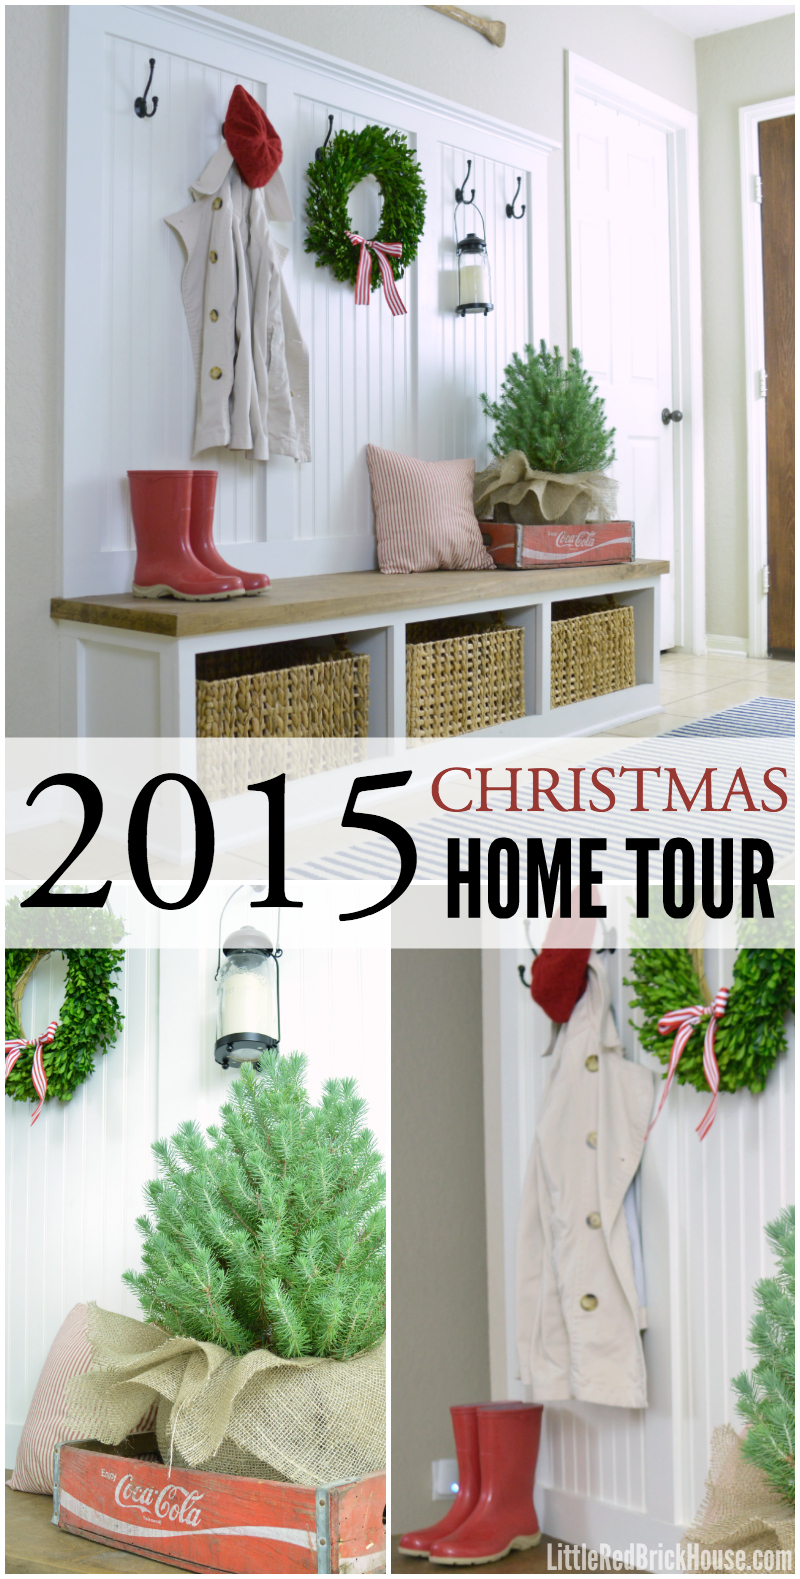 Christmas 2015 Home Tour Part 1 | LITTLE RED BRICK HOUSE